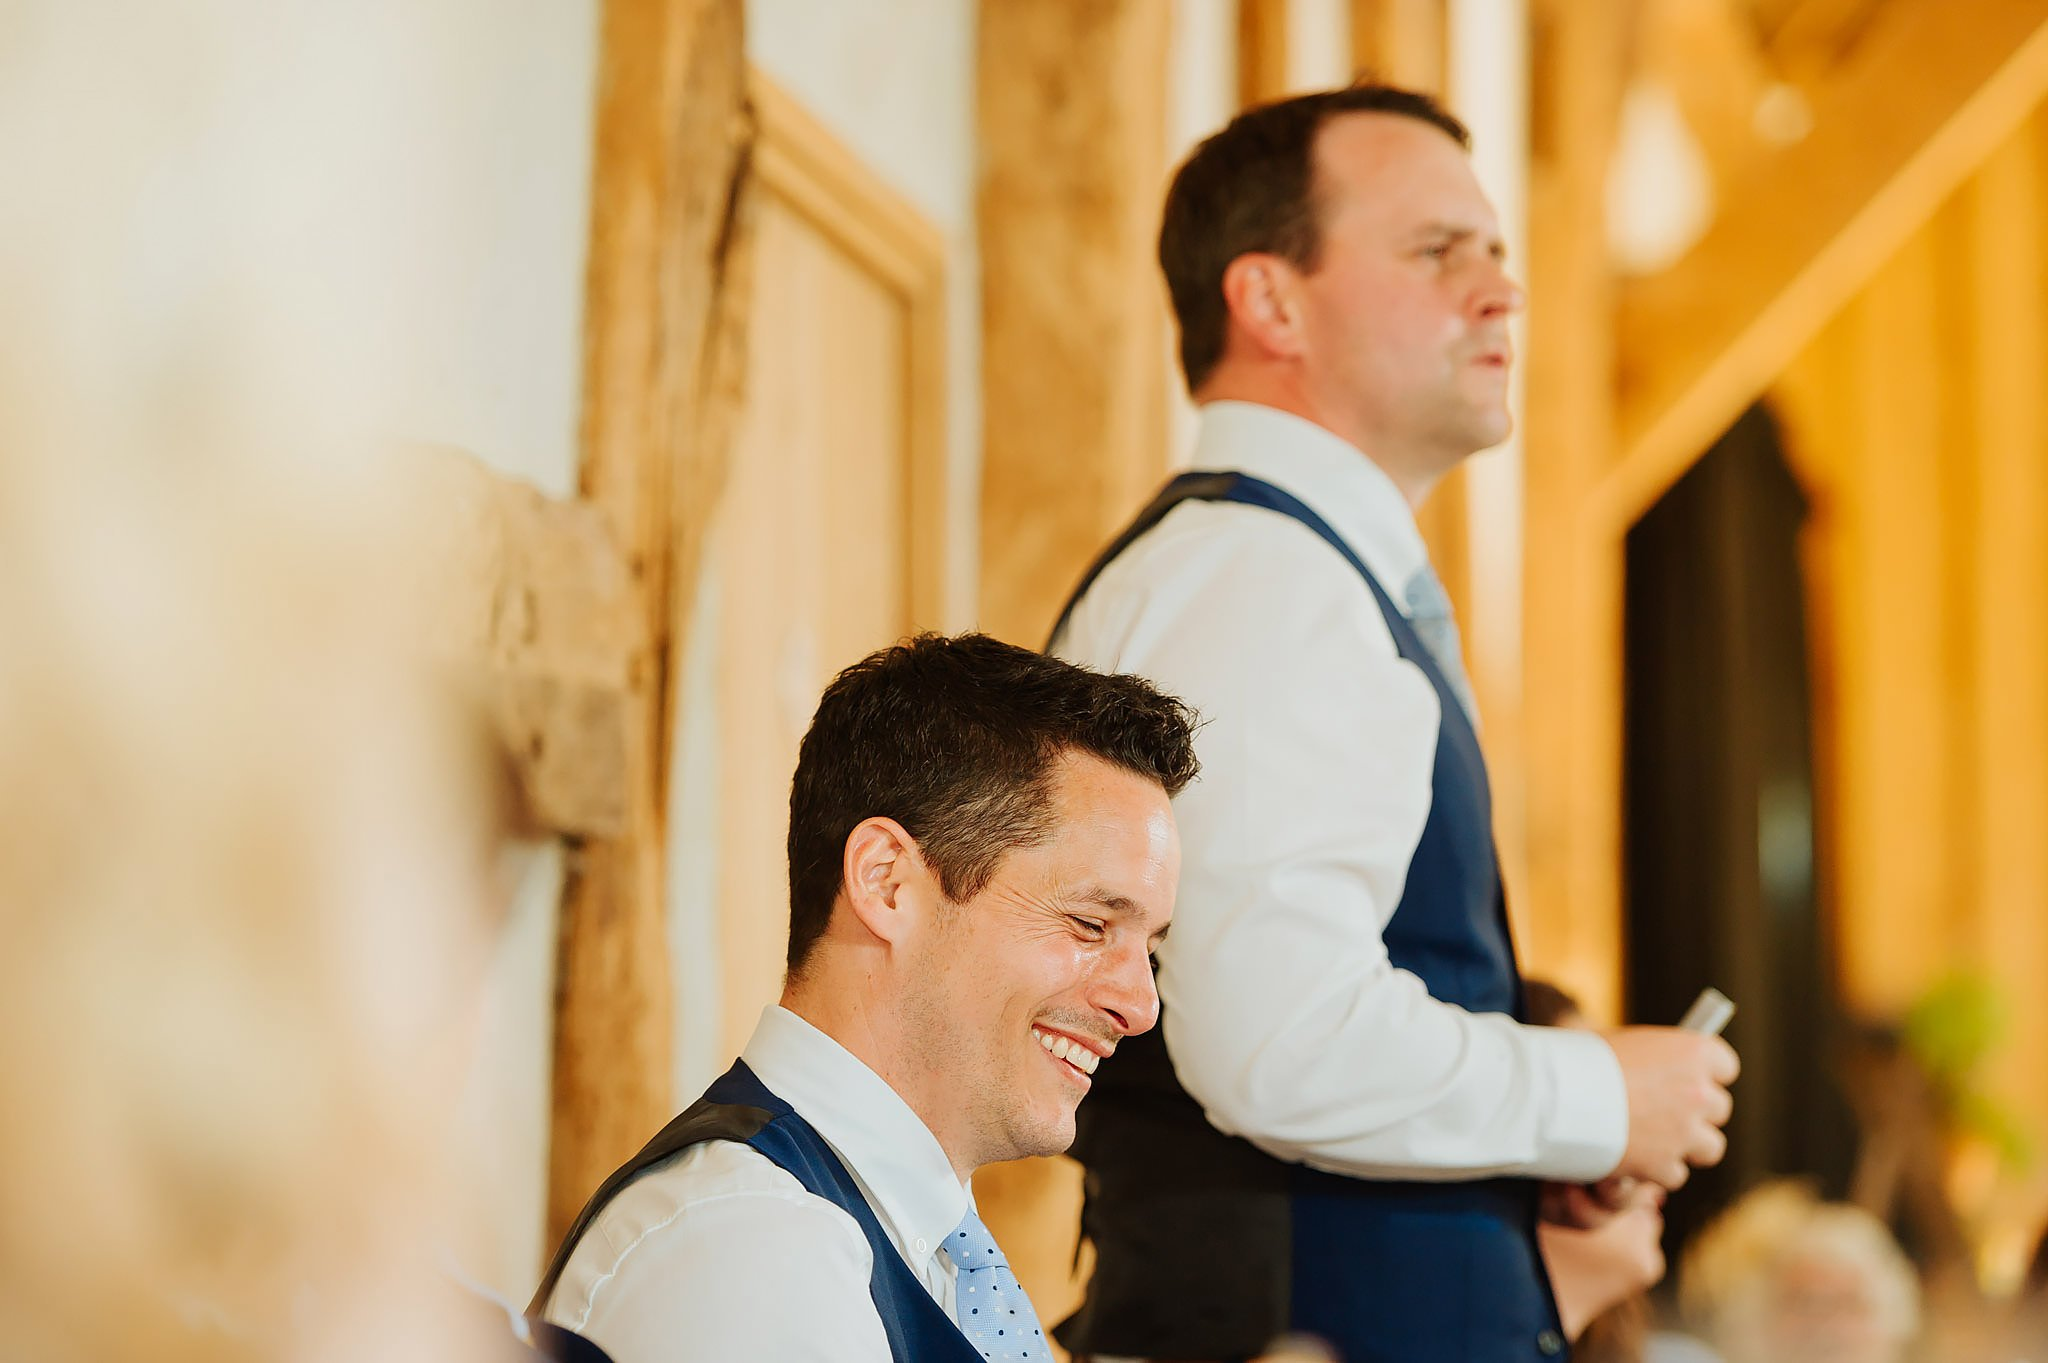 Wedding photography at Hellens Manor in Herefordshire, West Midlands | Shelley + Ian 75